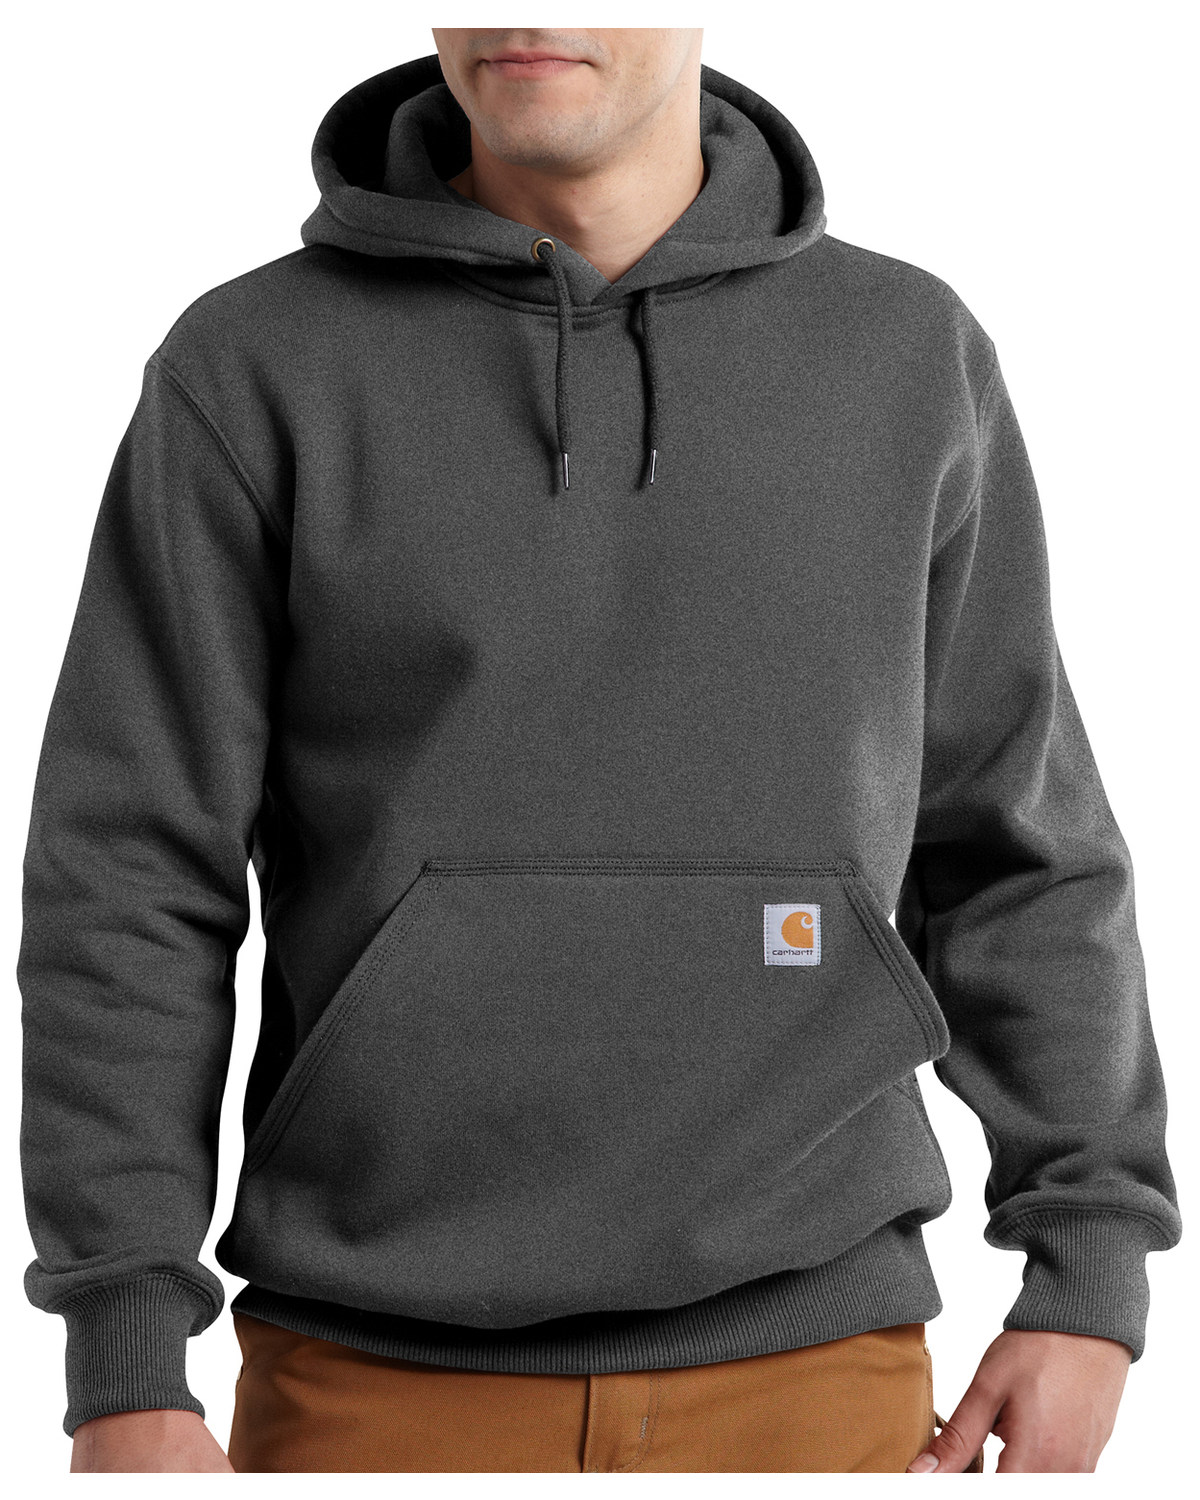 Carhartt Rain Defender Paxton Heavyweight Hooded Sweatshirt - Big & Tall,  Dark Grey, hi